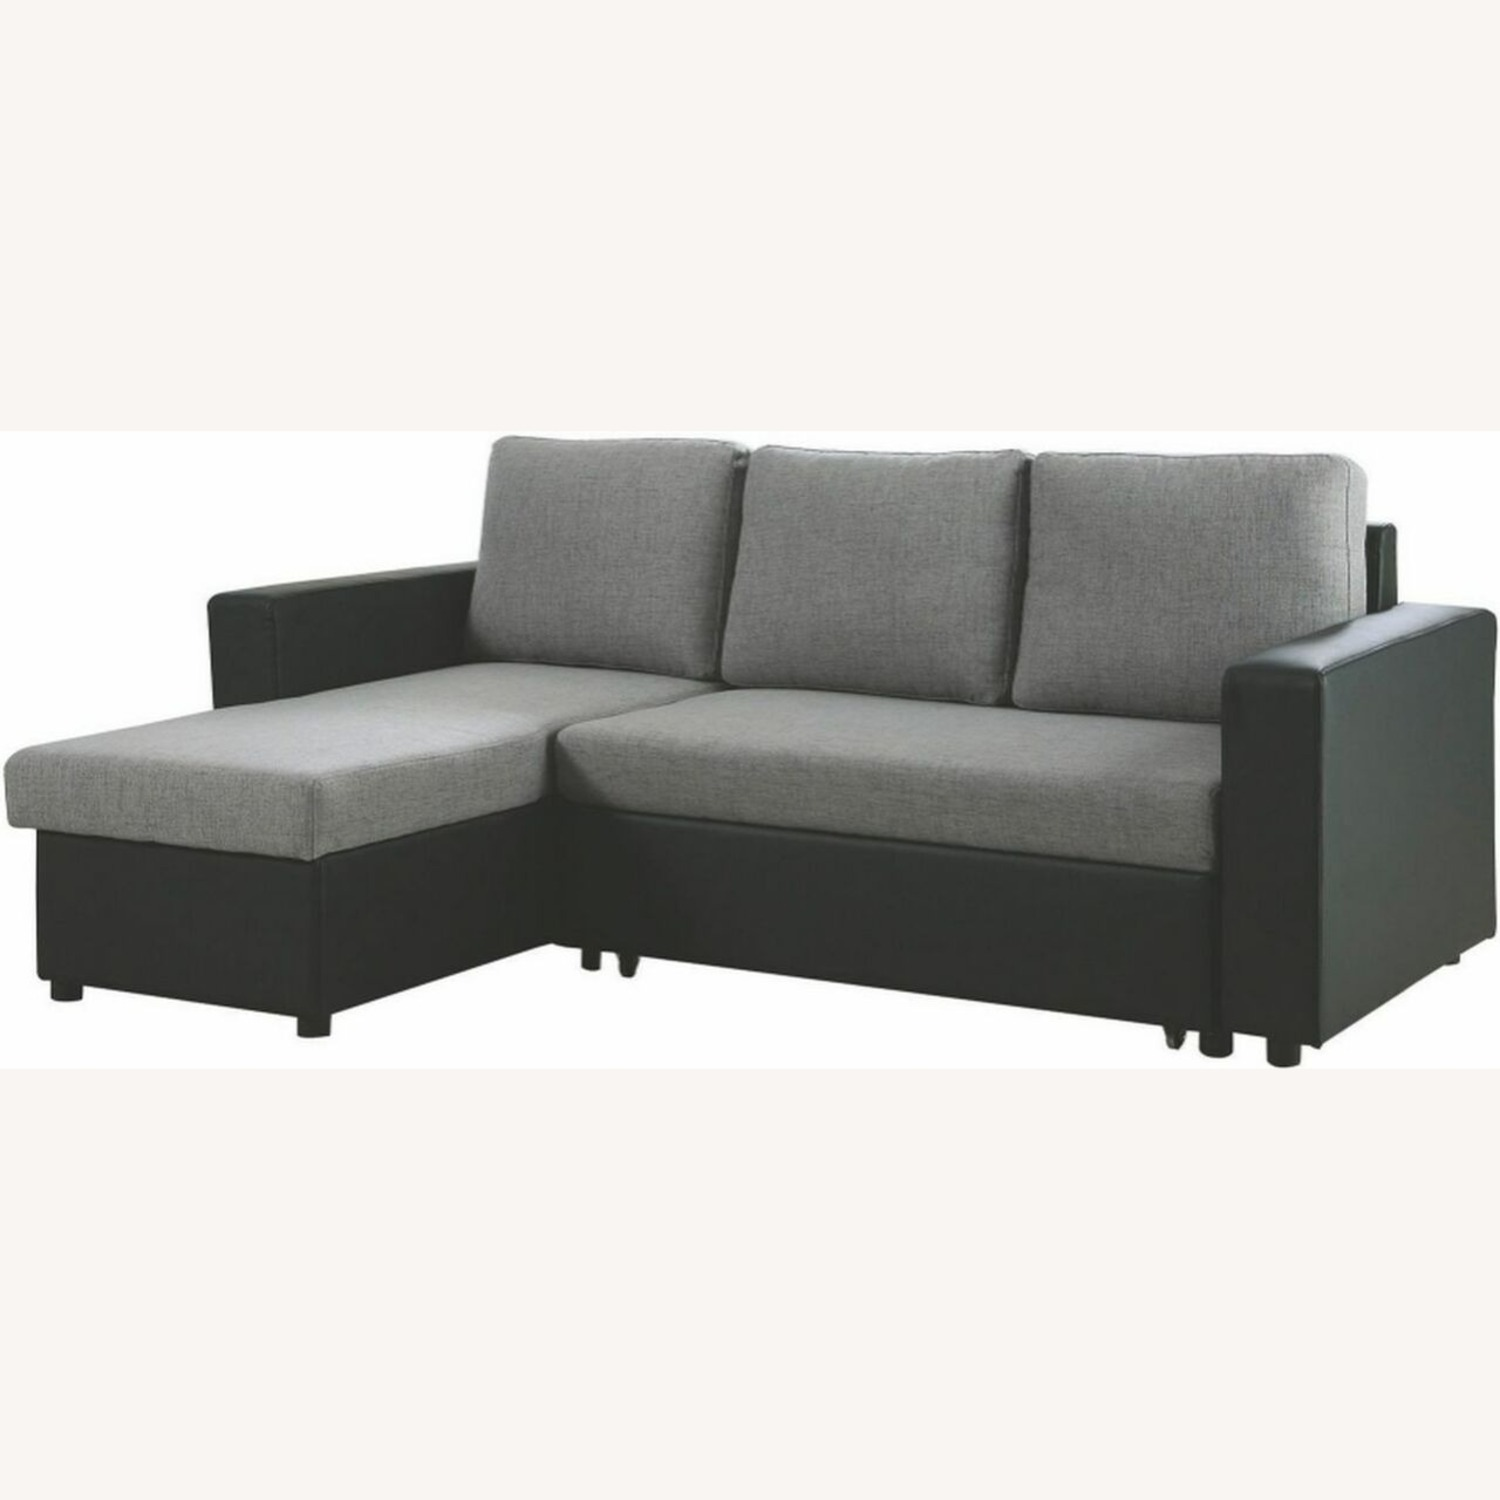 2-Piece Sectional In Grey Linen-Like Fabric - image-1